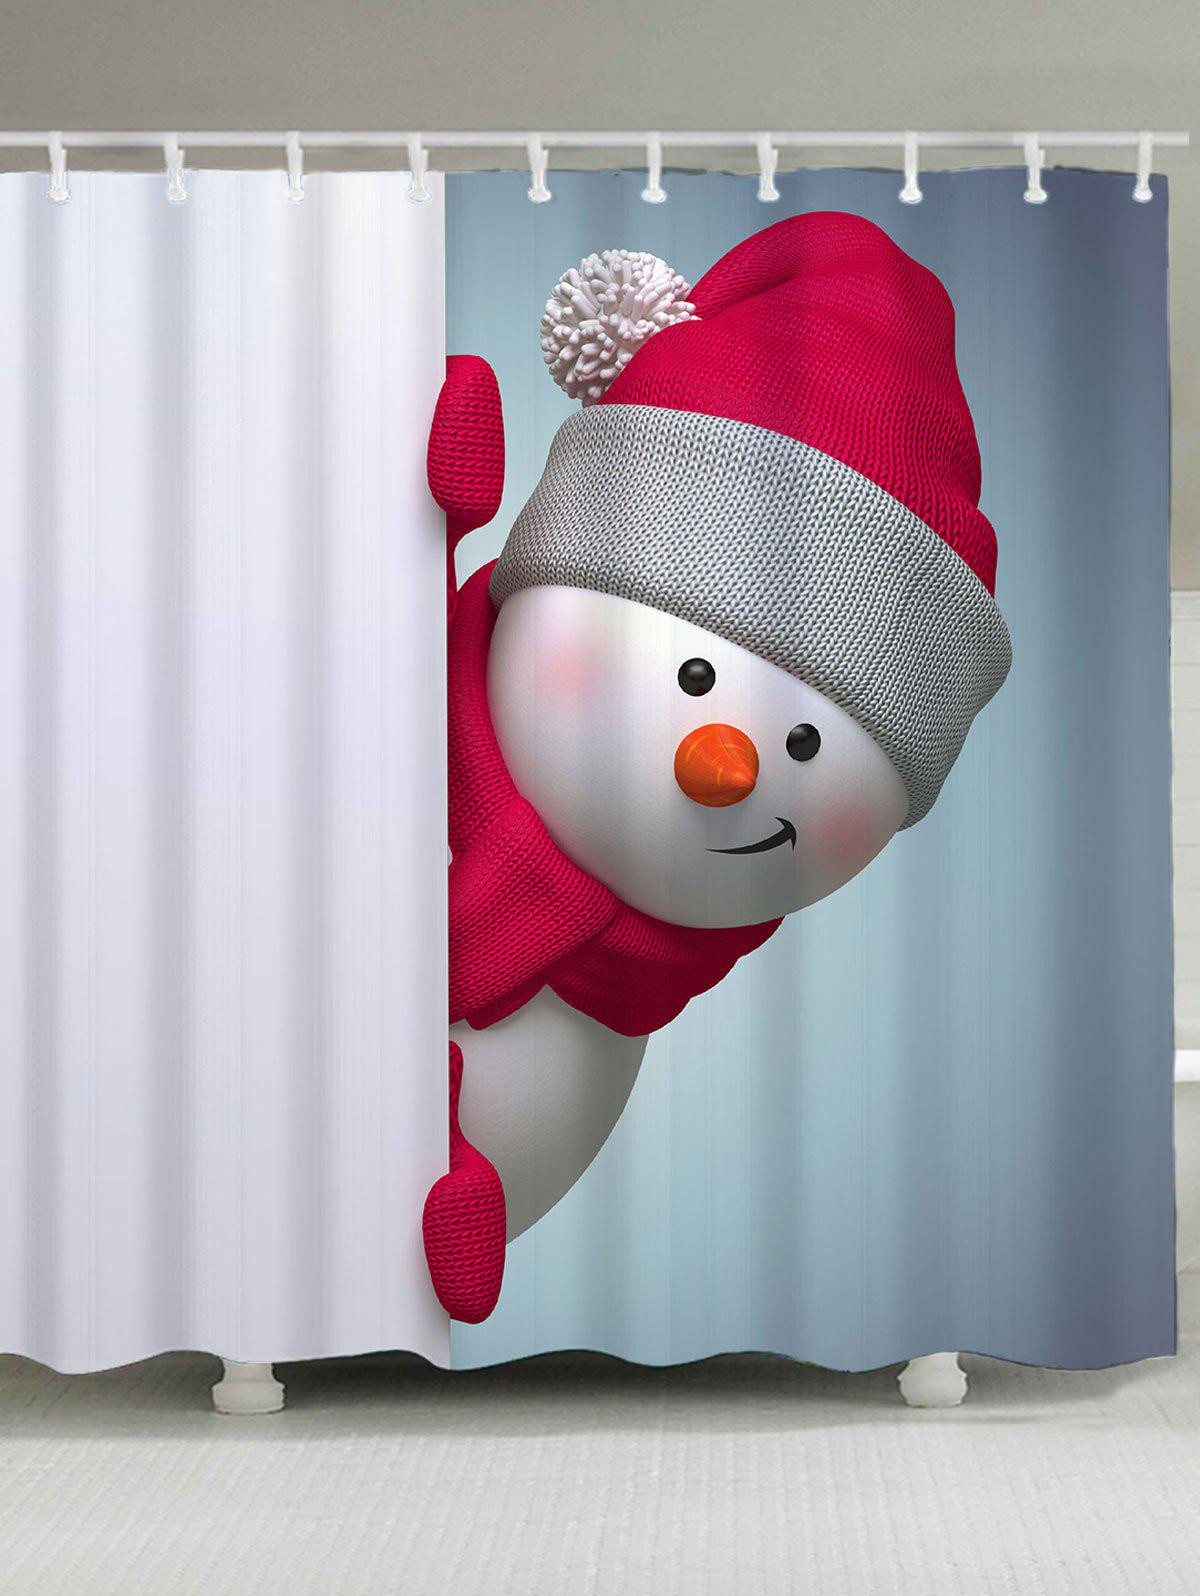 Bath Decor Christmas Snowman Printed Shower CurtainHOME<br><br>Size: W59 INCH * L71 INCH; Color: RED AND WHITE; Products Type: Shower Curtains; Materials: Polyester; Pattern: Snowman; Style: Festival; Number of Hook Holes: W59 inch * L71 inch:10, W71 inch * L71 inch:12, W71 inch * L79 inch:12; Package Contents: 1 x Shower Curtain 1 x Hooks (Set);